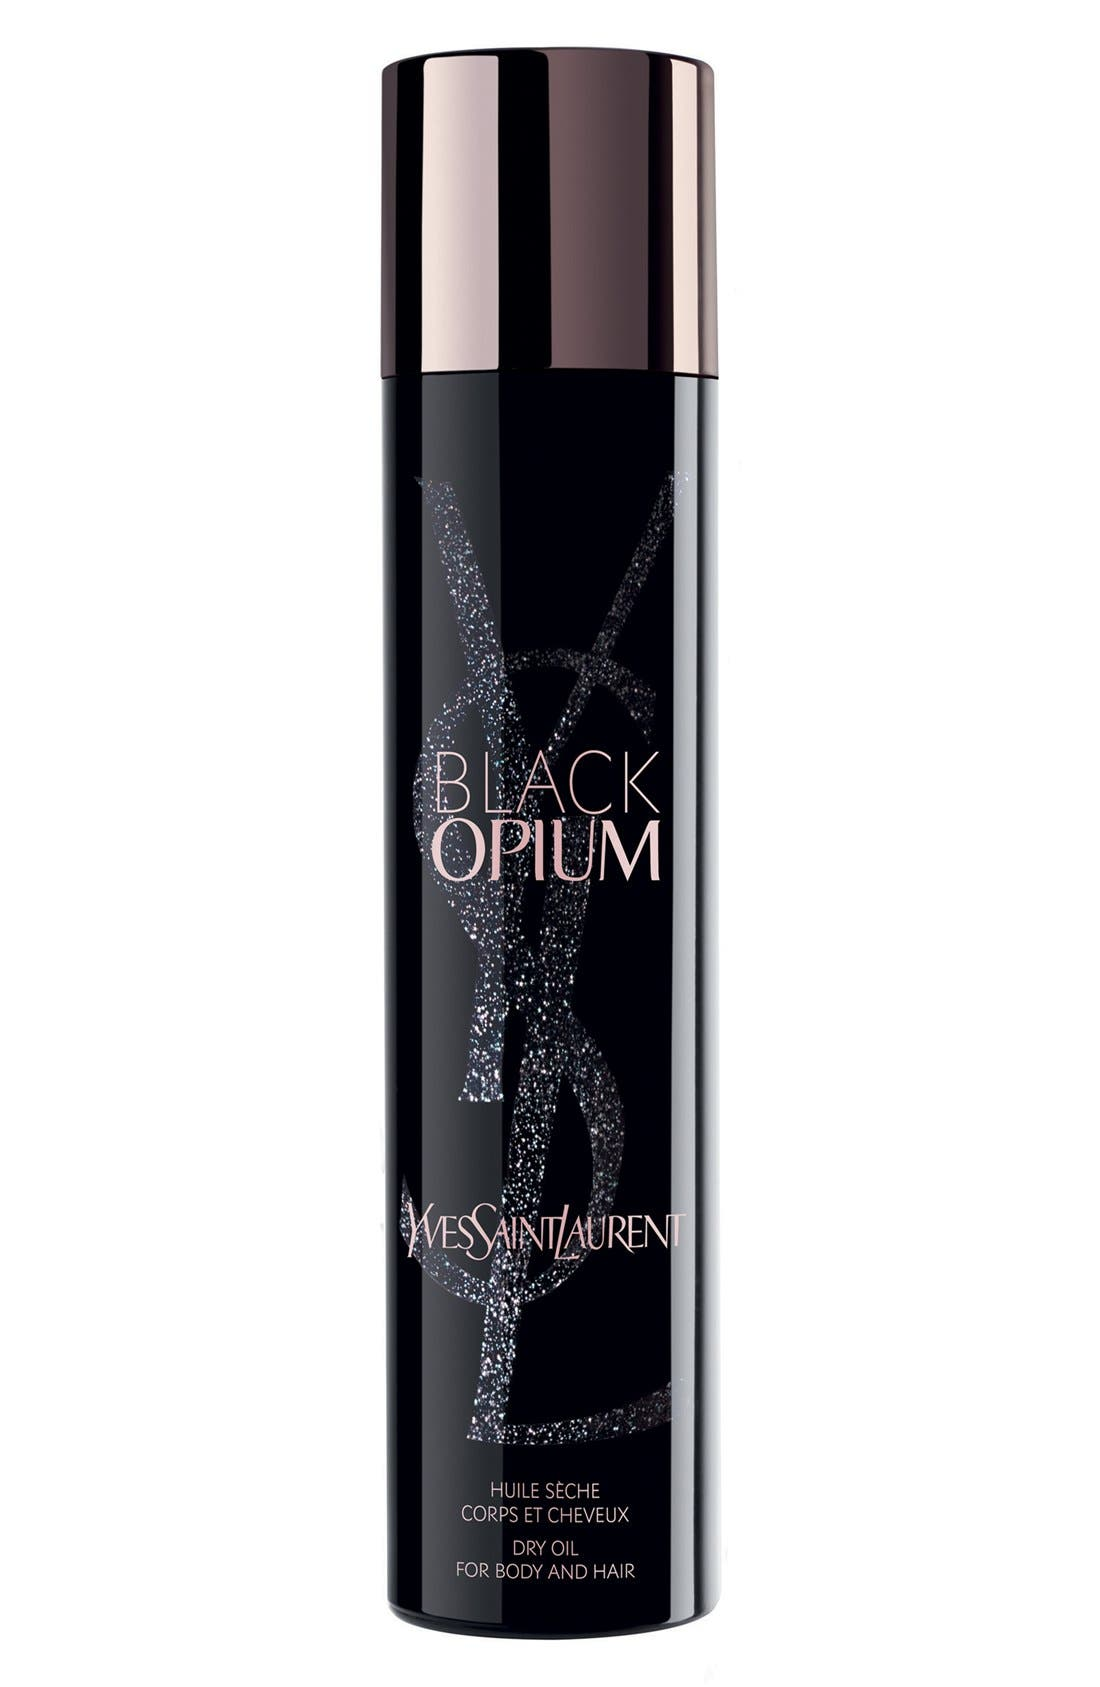 Black Opium Dry Oil for Body and Hair,                             Main thumbnail 1, color,                             NO COLOR